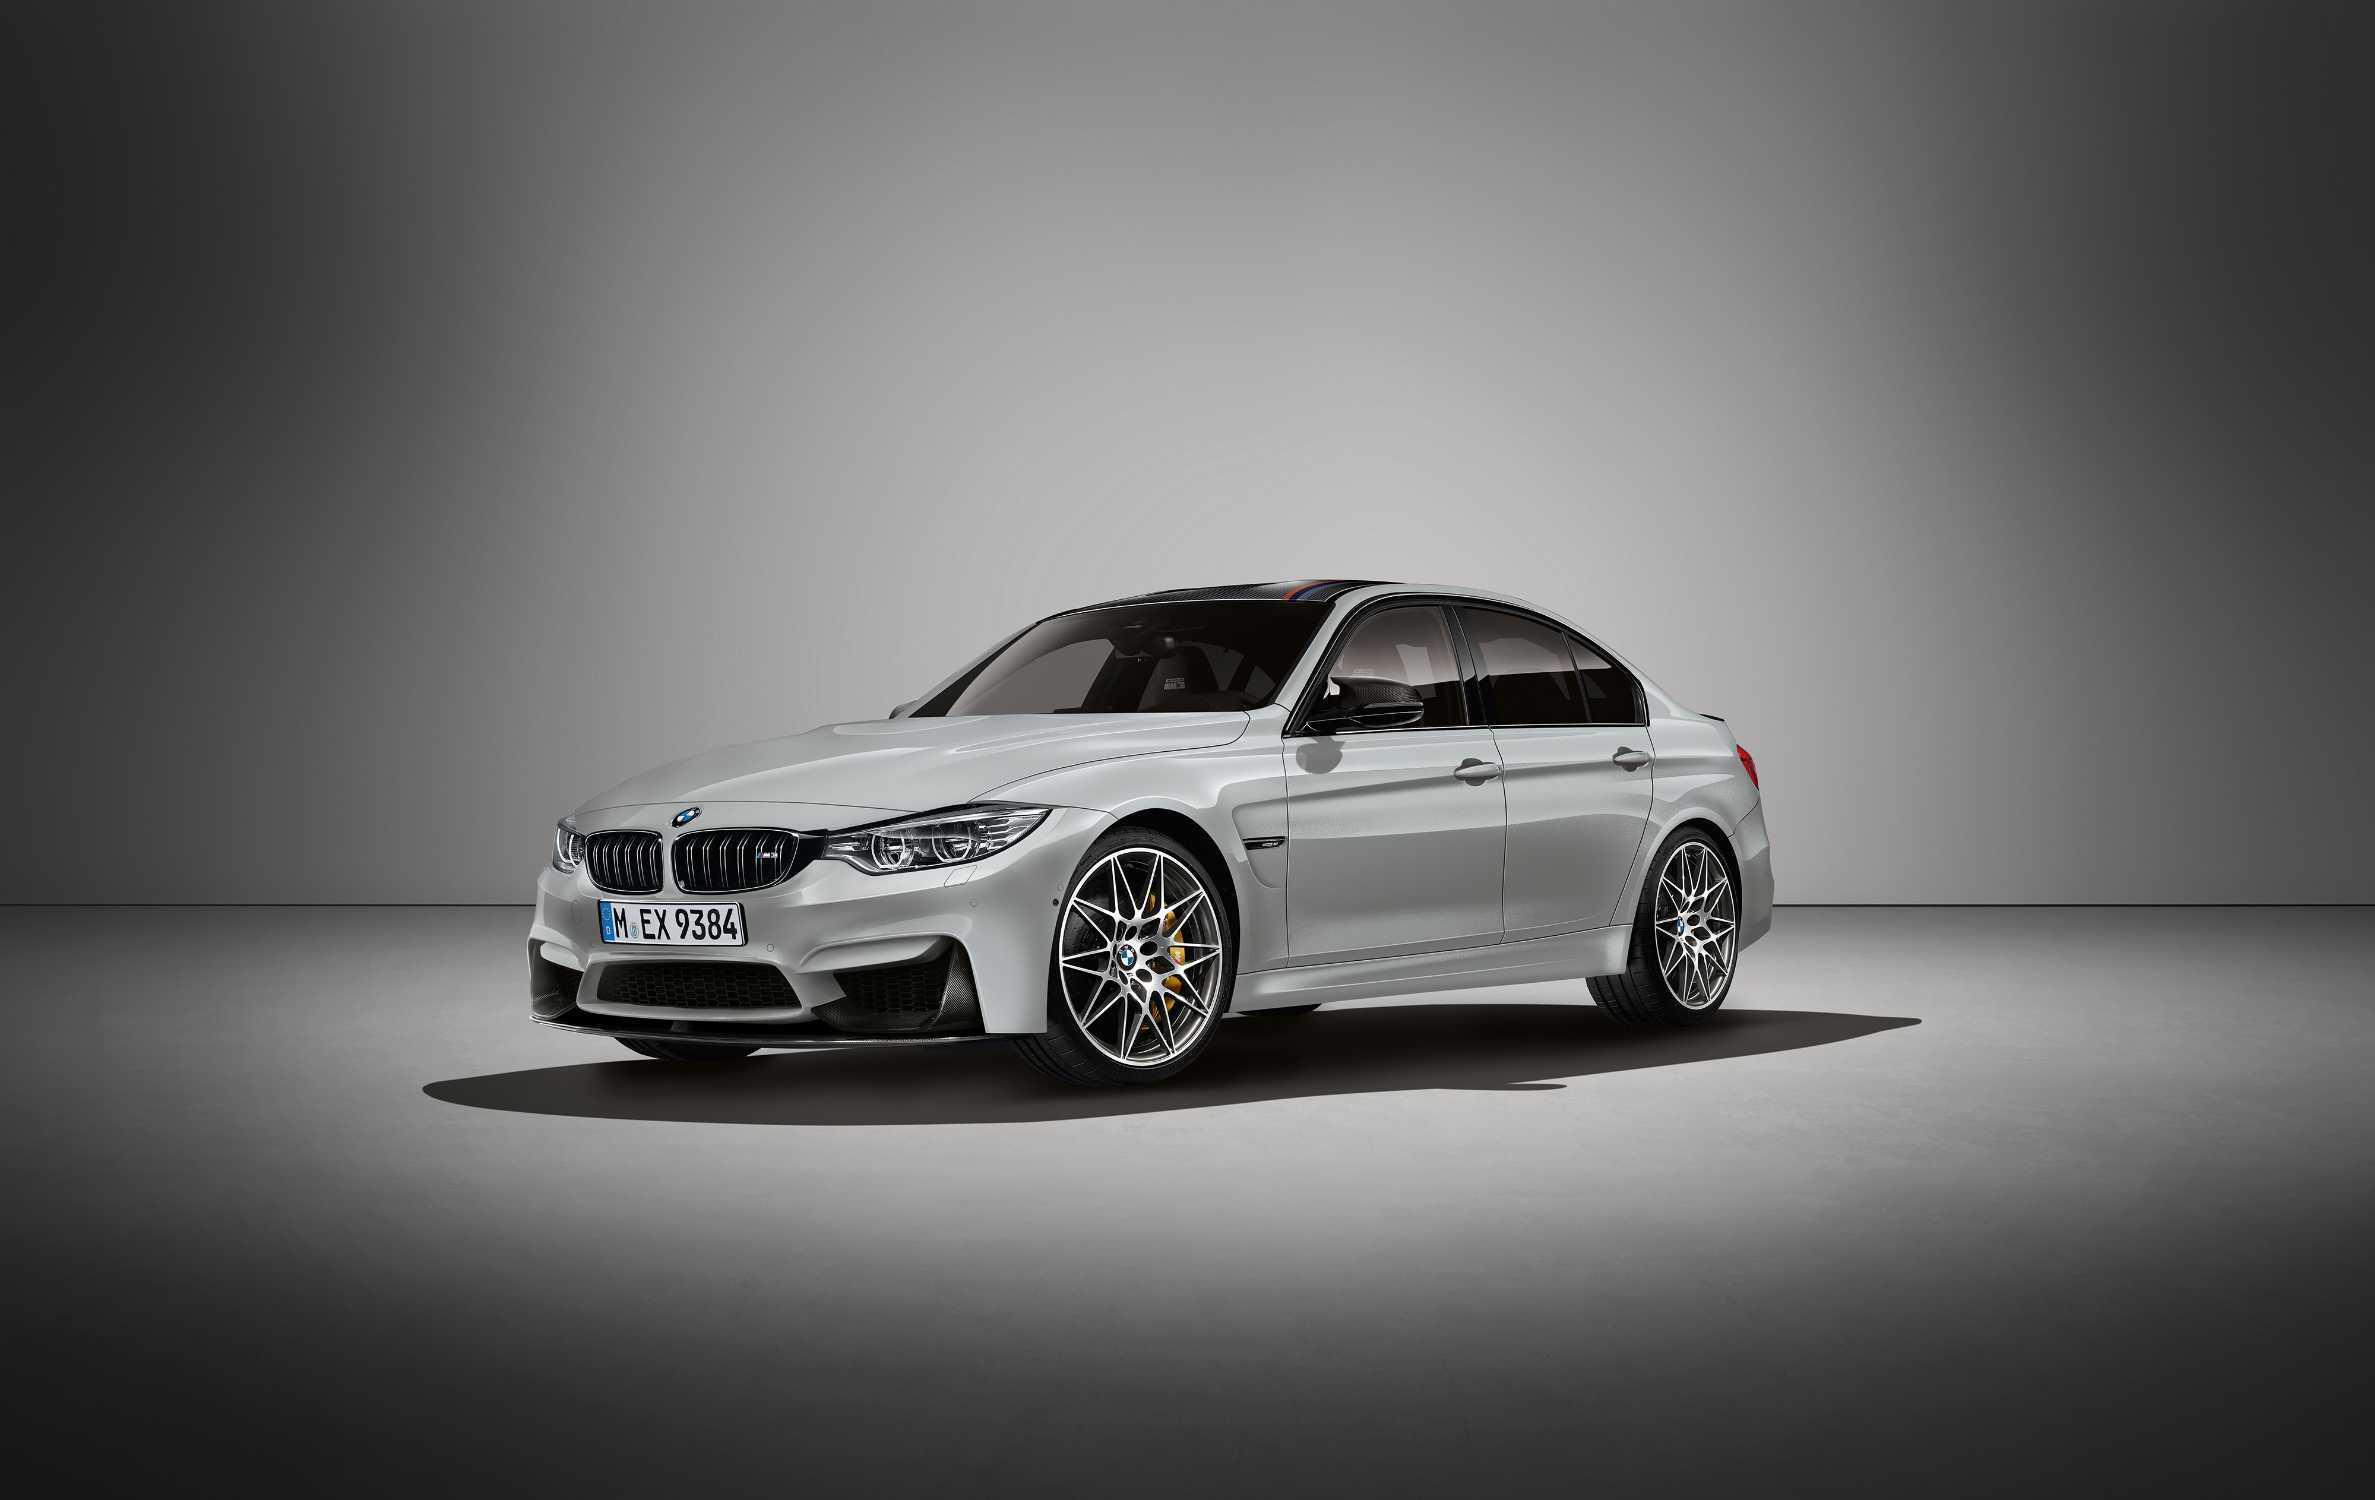 The New Bmw M3 30 Jahre Limited Edition